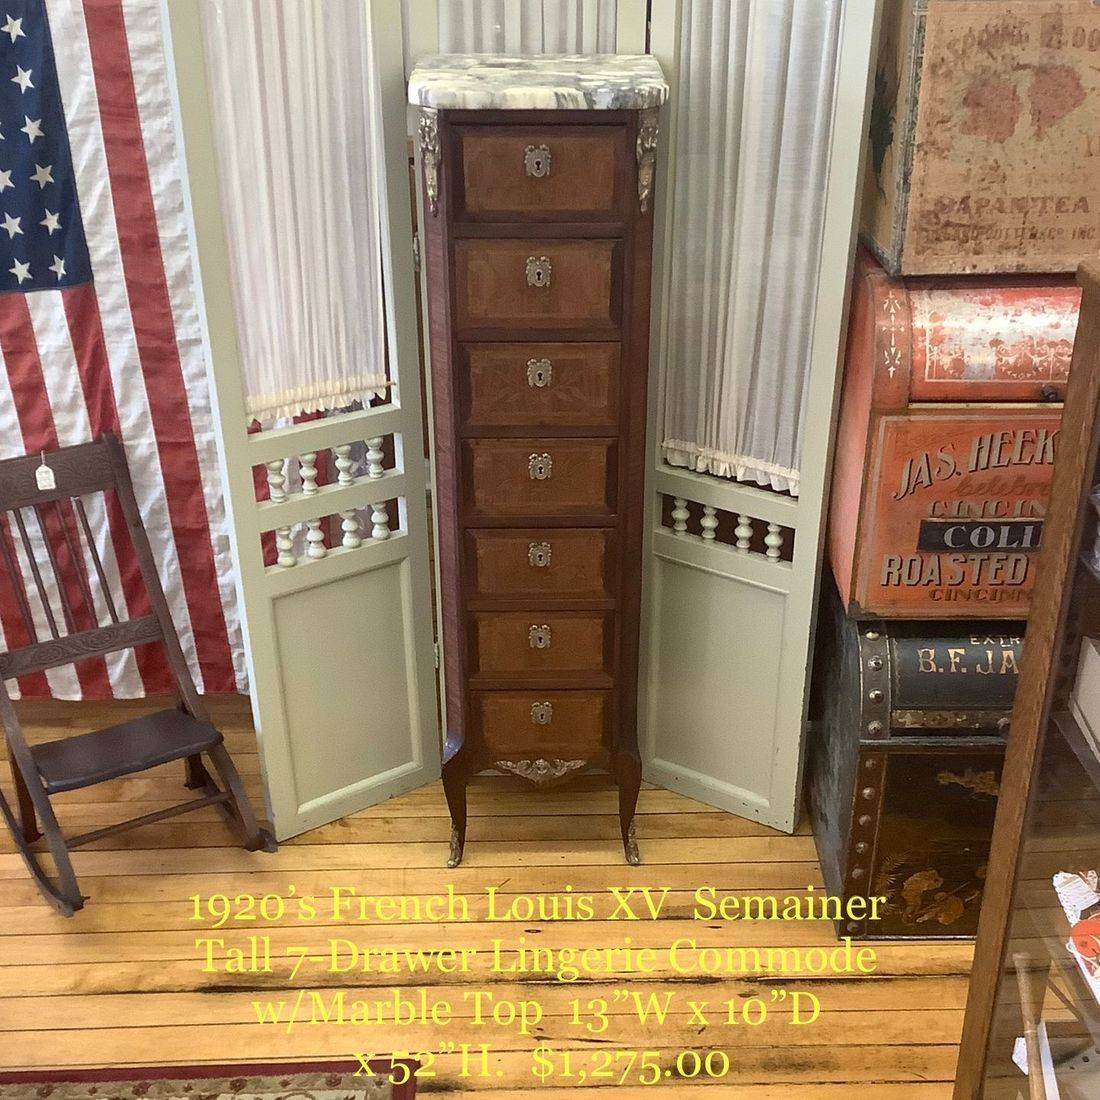 1920's French Louis XV Semainer 7-Drawer Lingerie Commode   $1,275.00